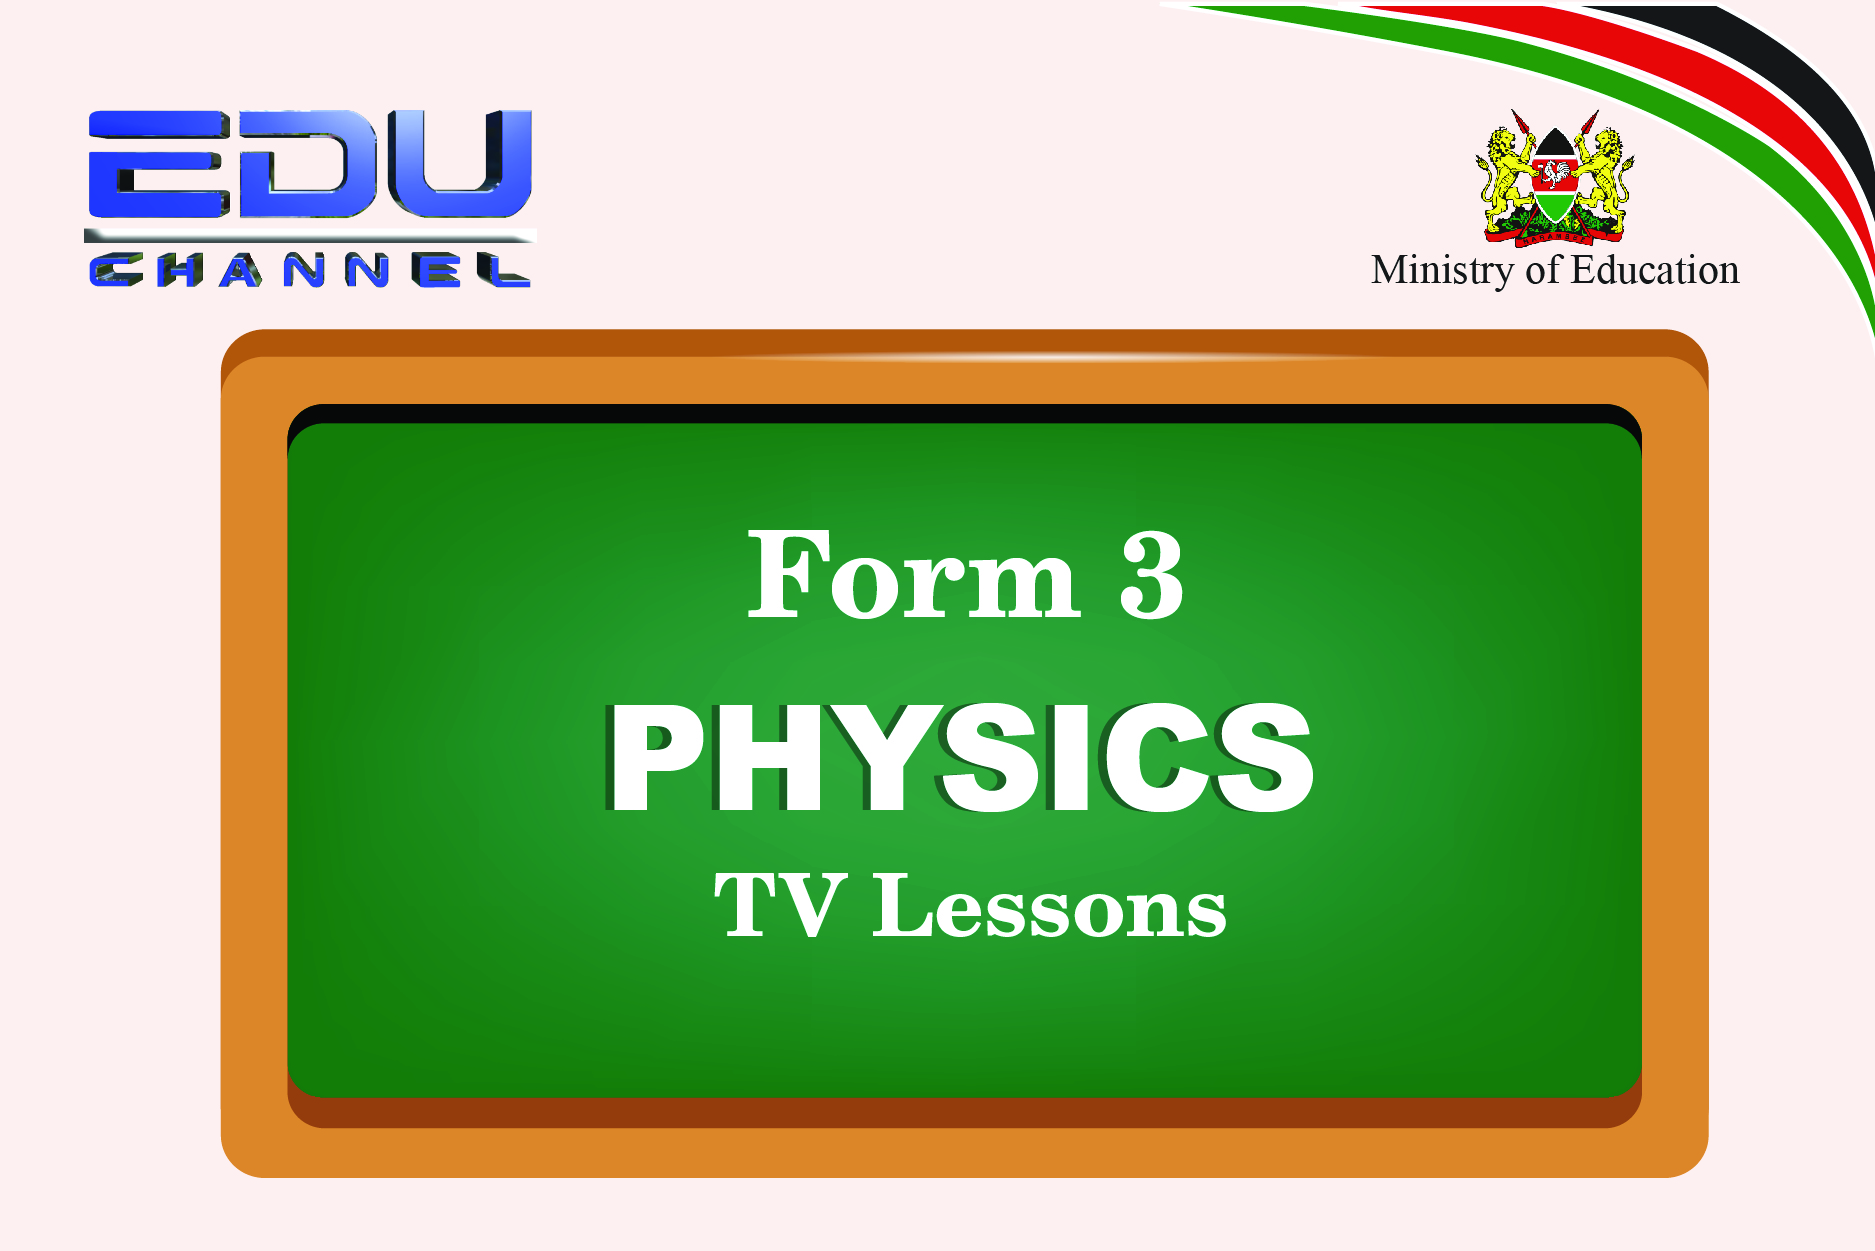 Form 3 Physics Lesson 2: Linear Motions Graphs